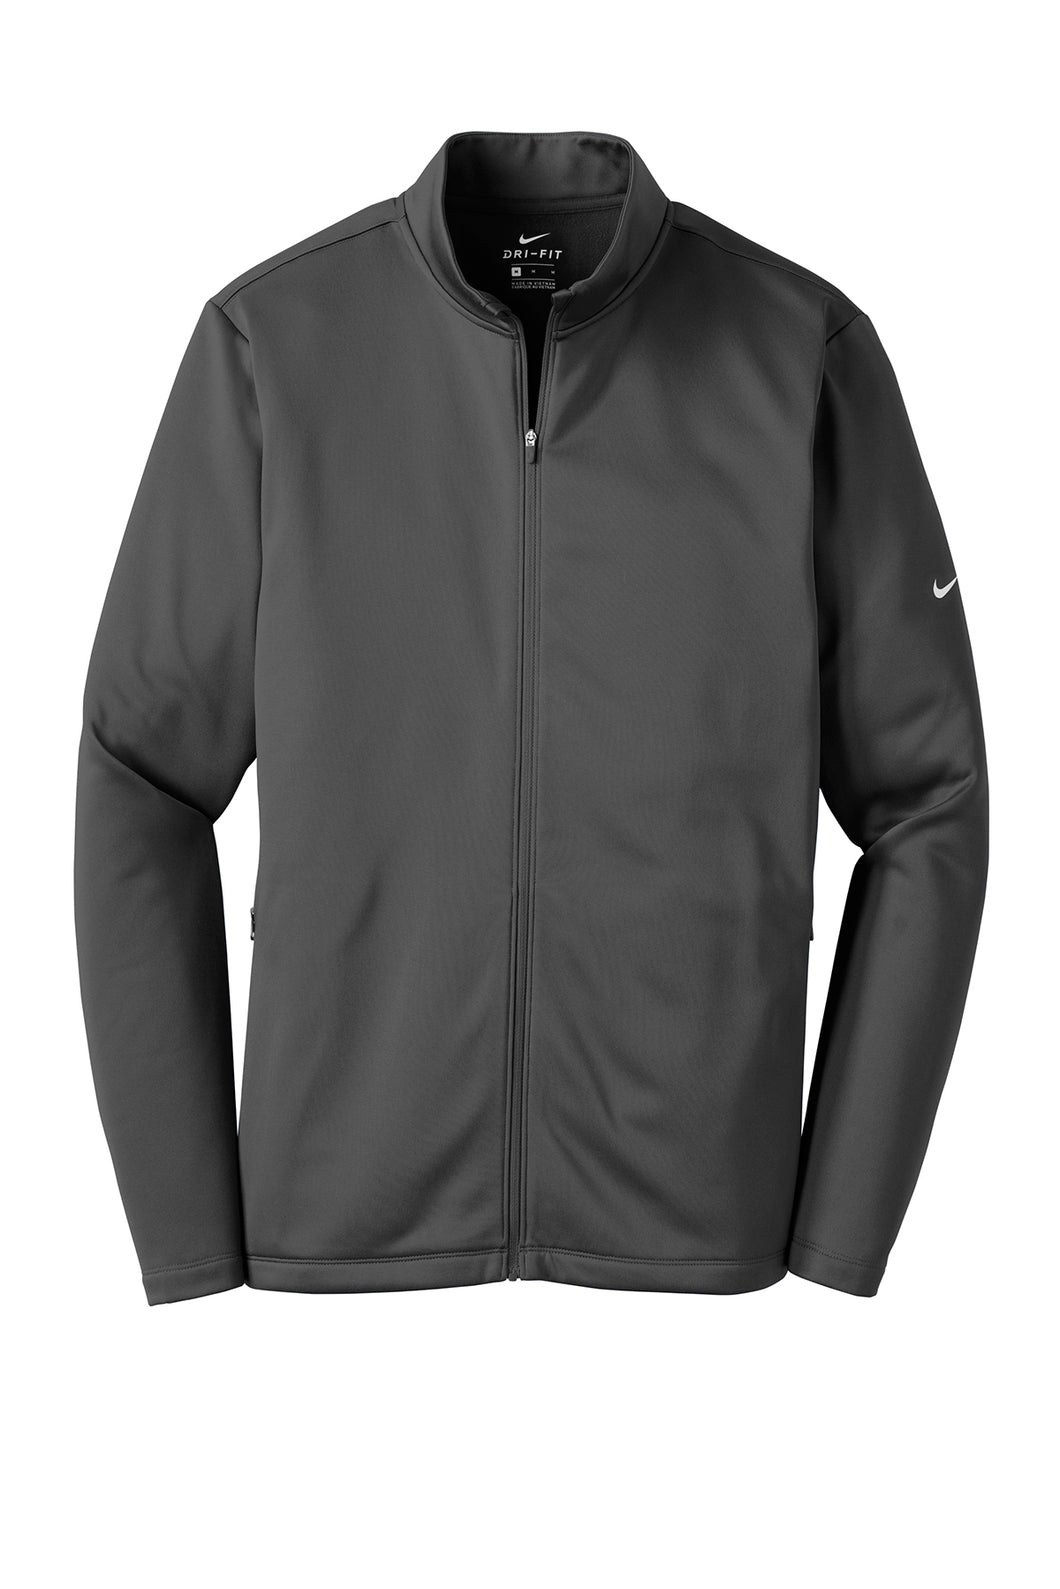 Nike Therma-FIT Full-Zip Fleece